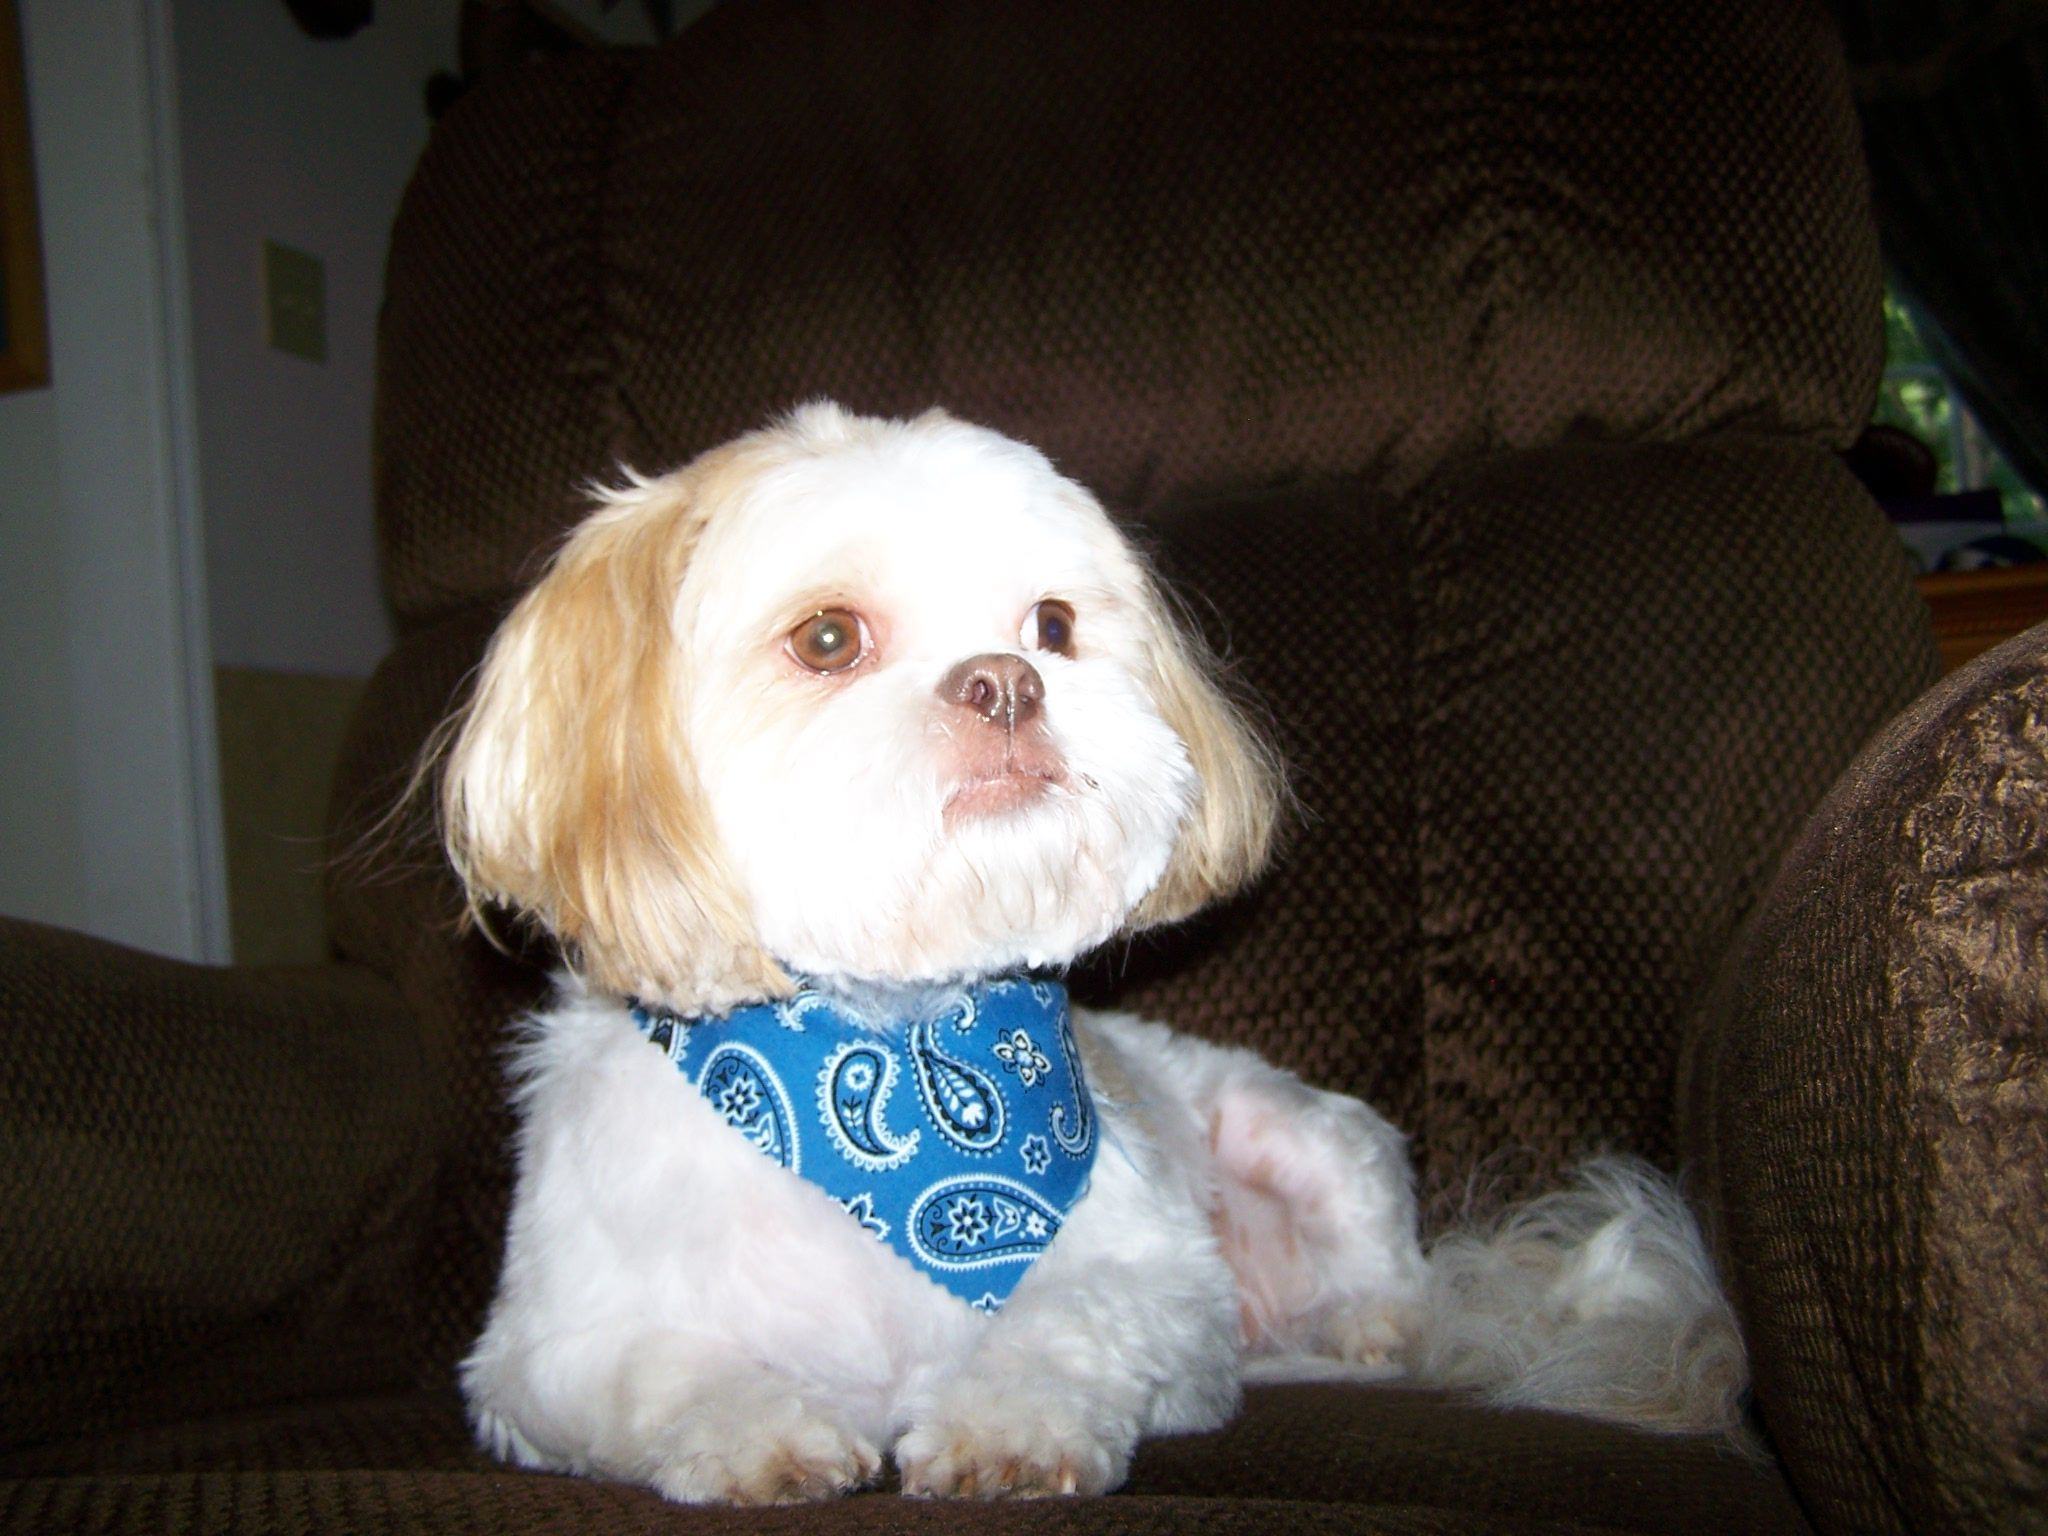 This is my 3-year-old Shih-Tzu. She is my baby!